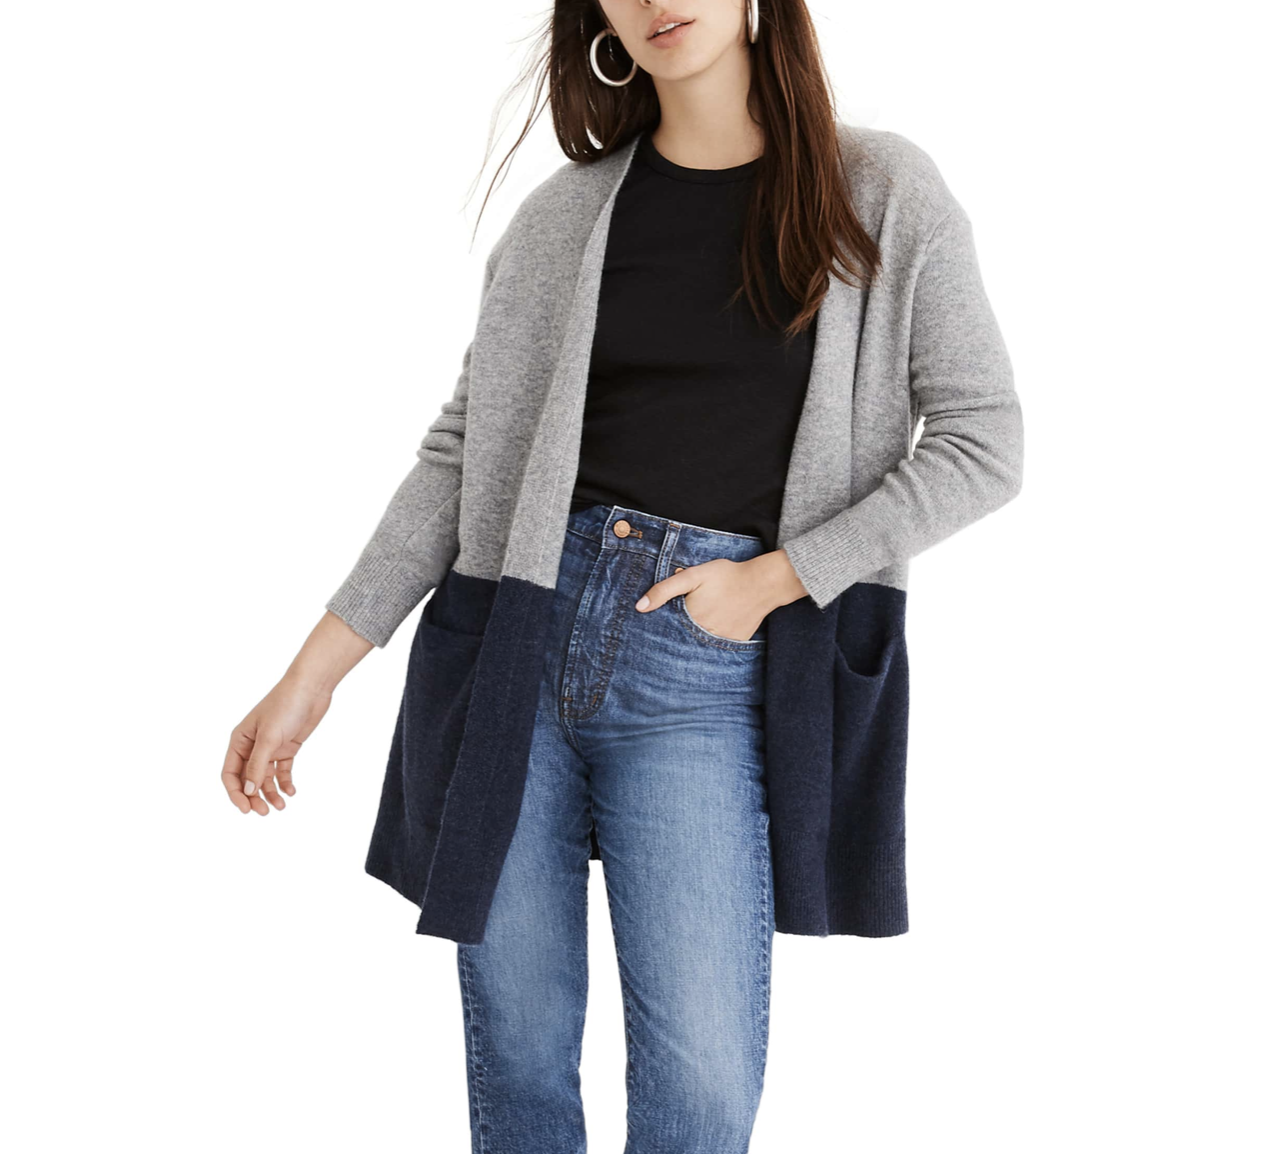 Color Block Madewell Cardigan | Nordstrom Anniversary Sale 2019 | A Demure Life Fashion Blog